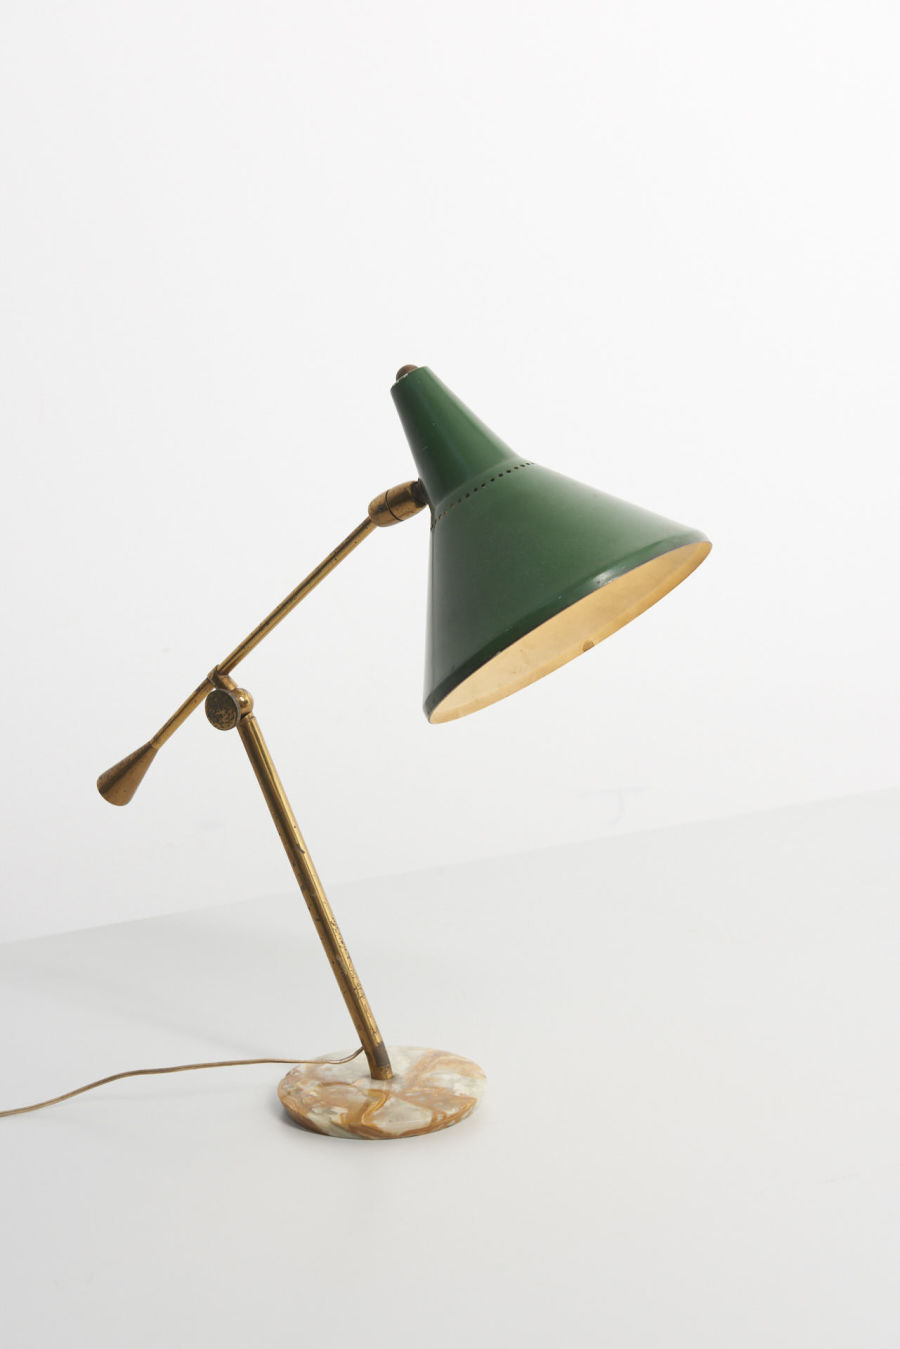 modestfurniture-vintage-2445-table-lamp-italy-marble-green-shade02